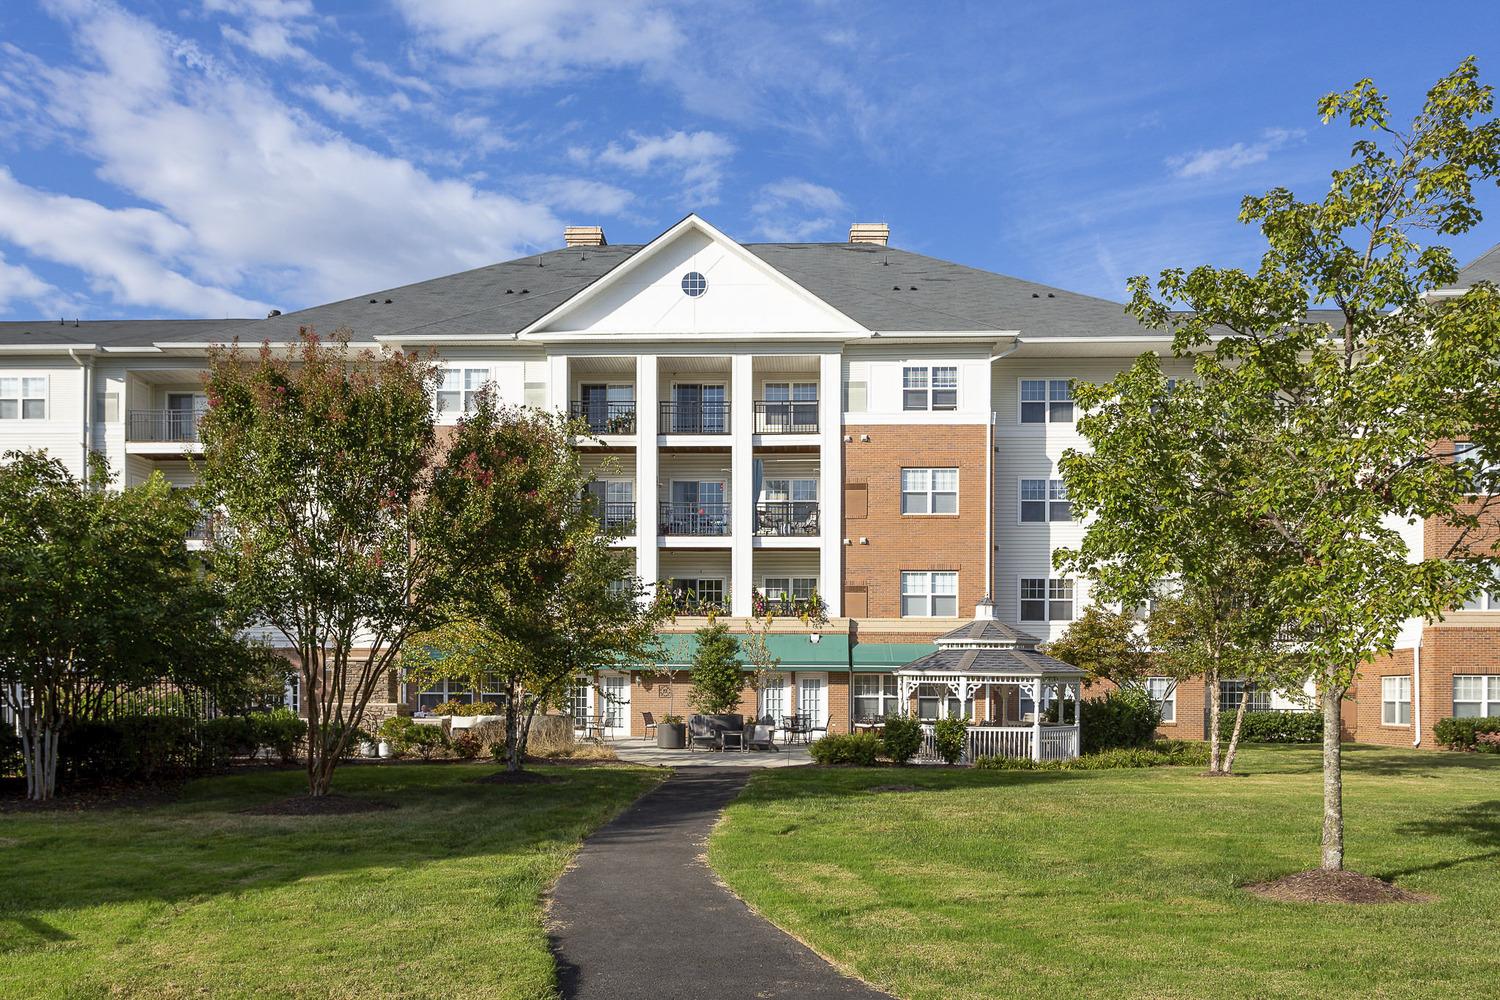 CBG builds The Evergreens at Smith Run, a 130-Unit Luxury Assisted Living Community in Fredericksburg, VA